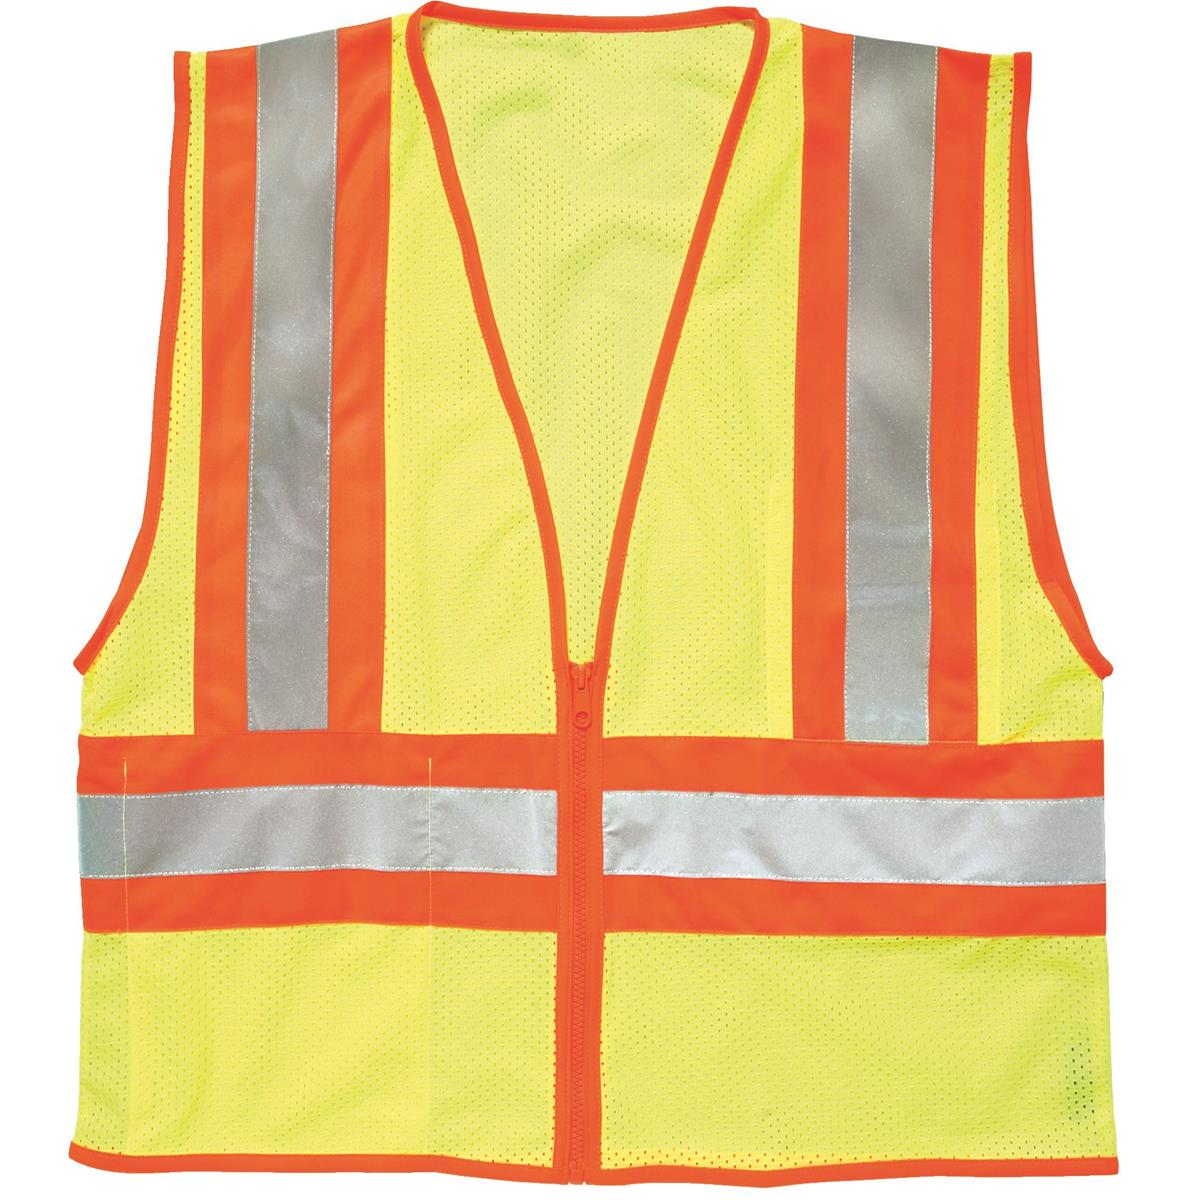 ML Kishigo ANSI Class II Safety Vest with Wide Reflective Striping